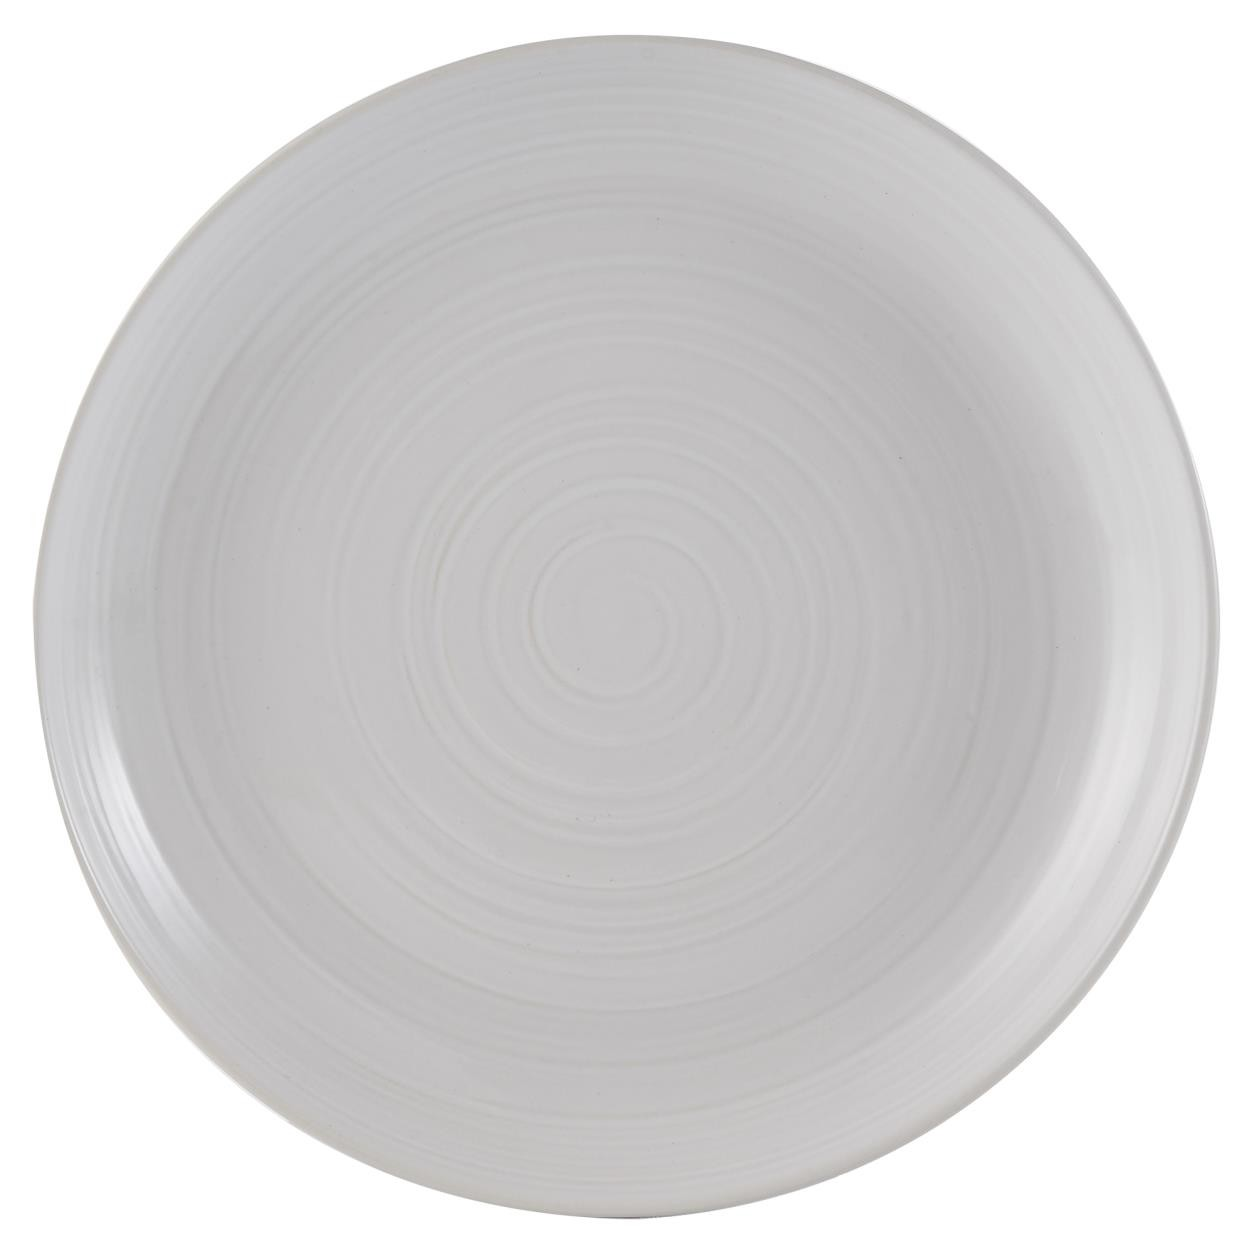 WILLIAM MASON DINNER PLATE WHITE